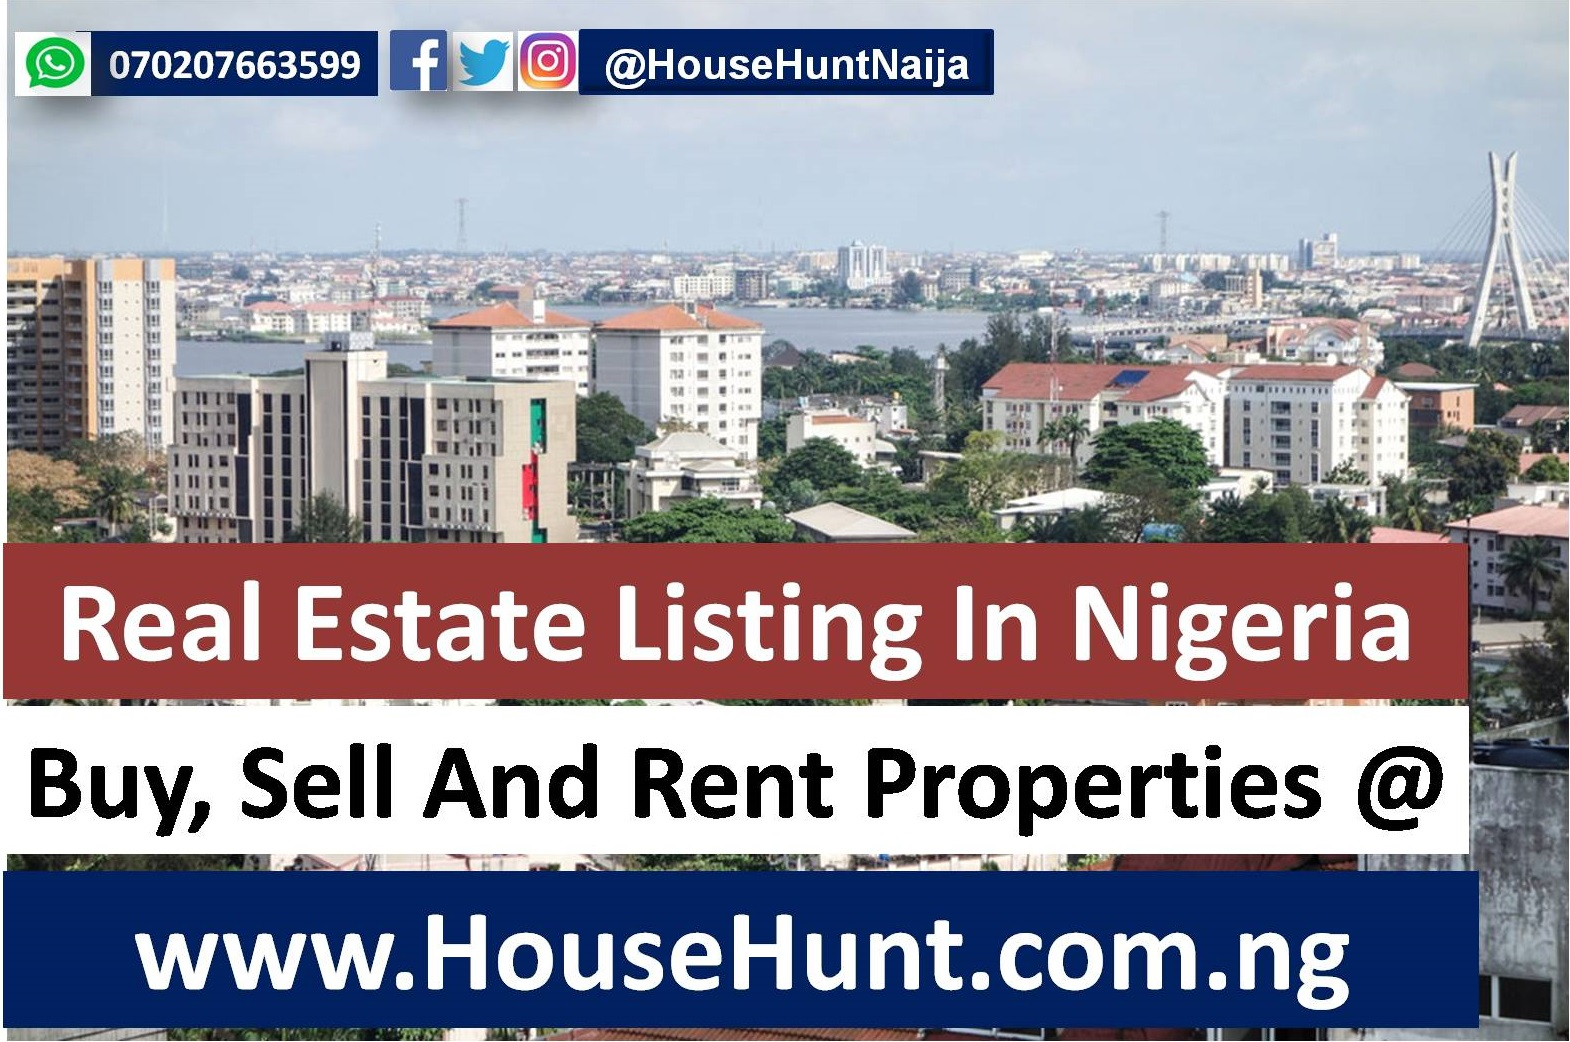 Buy, Sell, Rent Properties At www.HouseHunt.com.ng